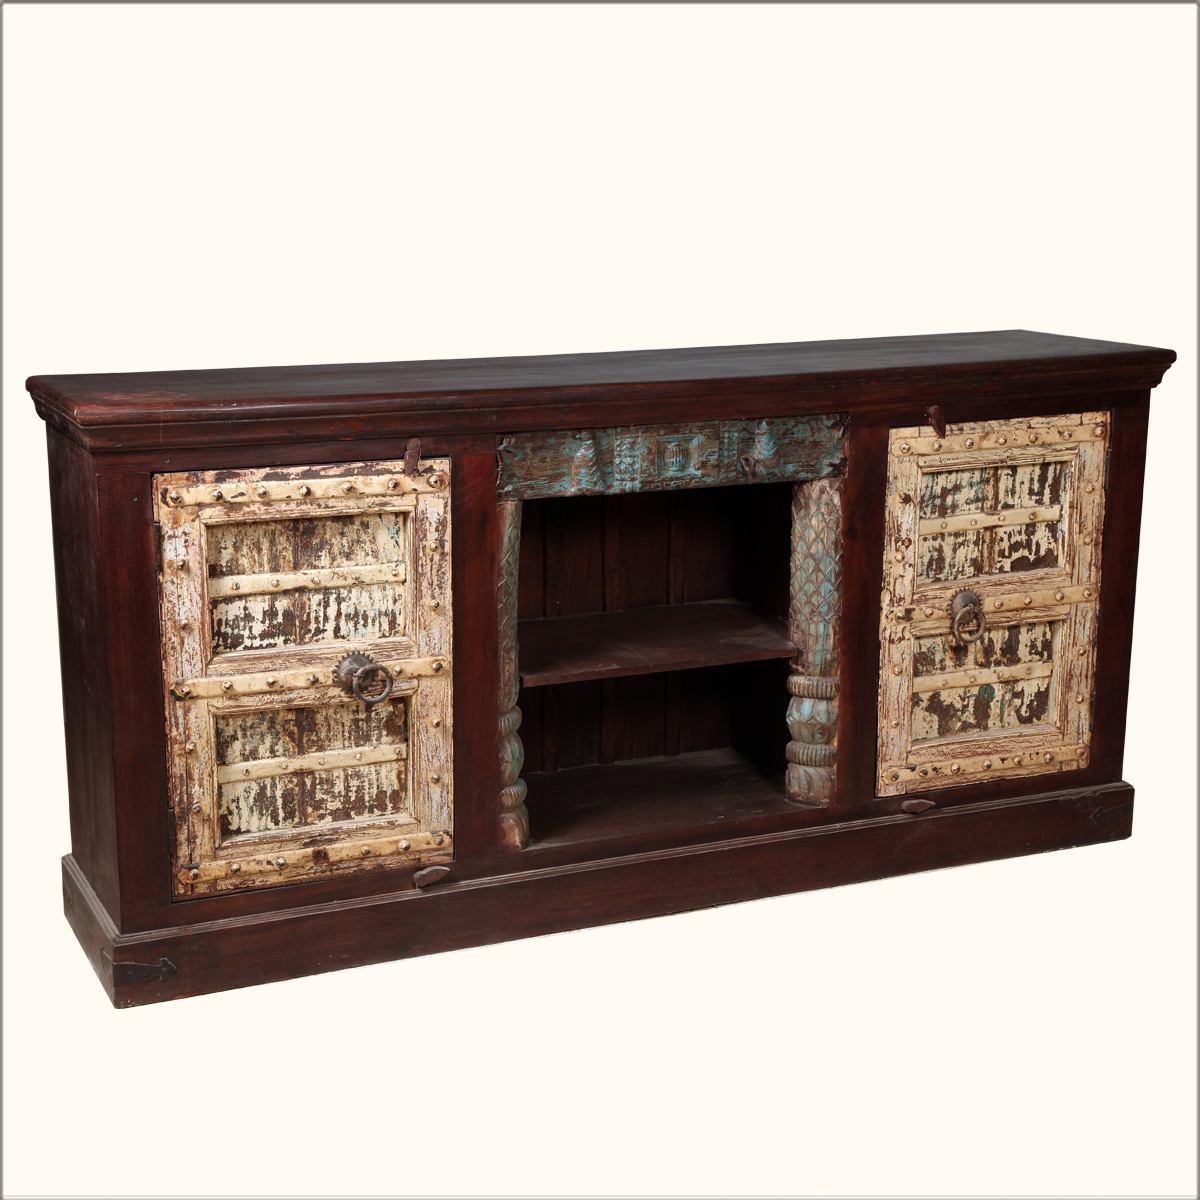 Reclaimed Solid Wood Sideboard Storage Bench: Reclaimed Solid Wood Media Console Rustic Storage